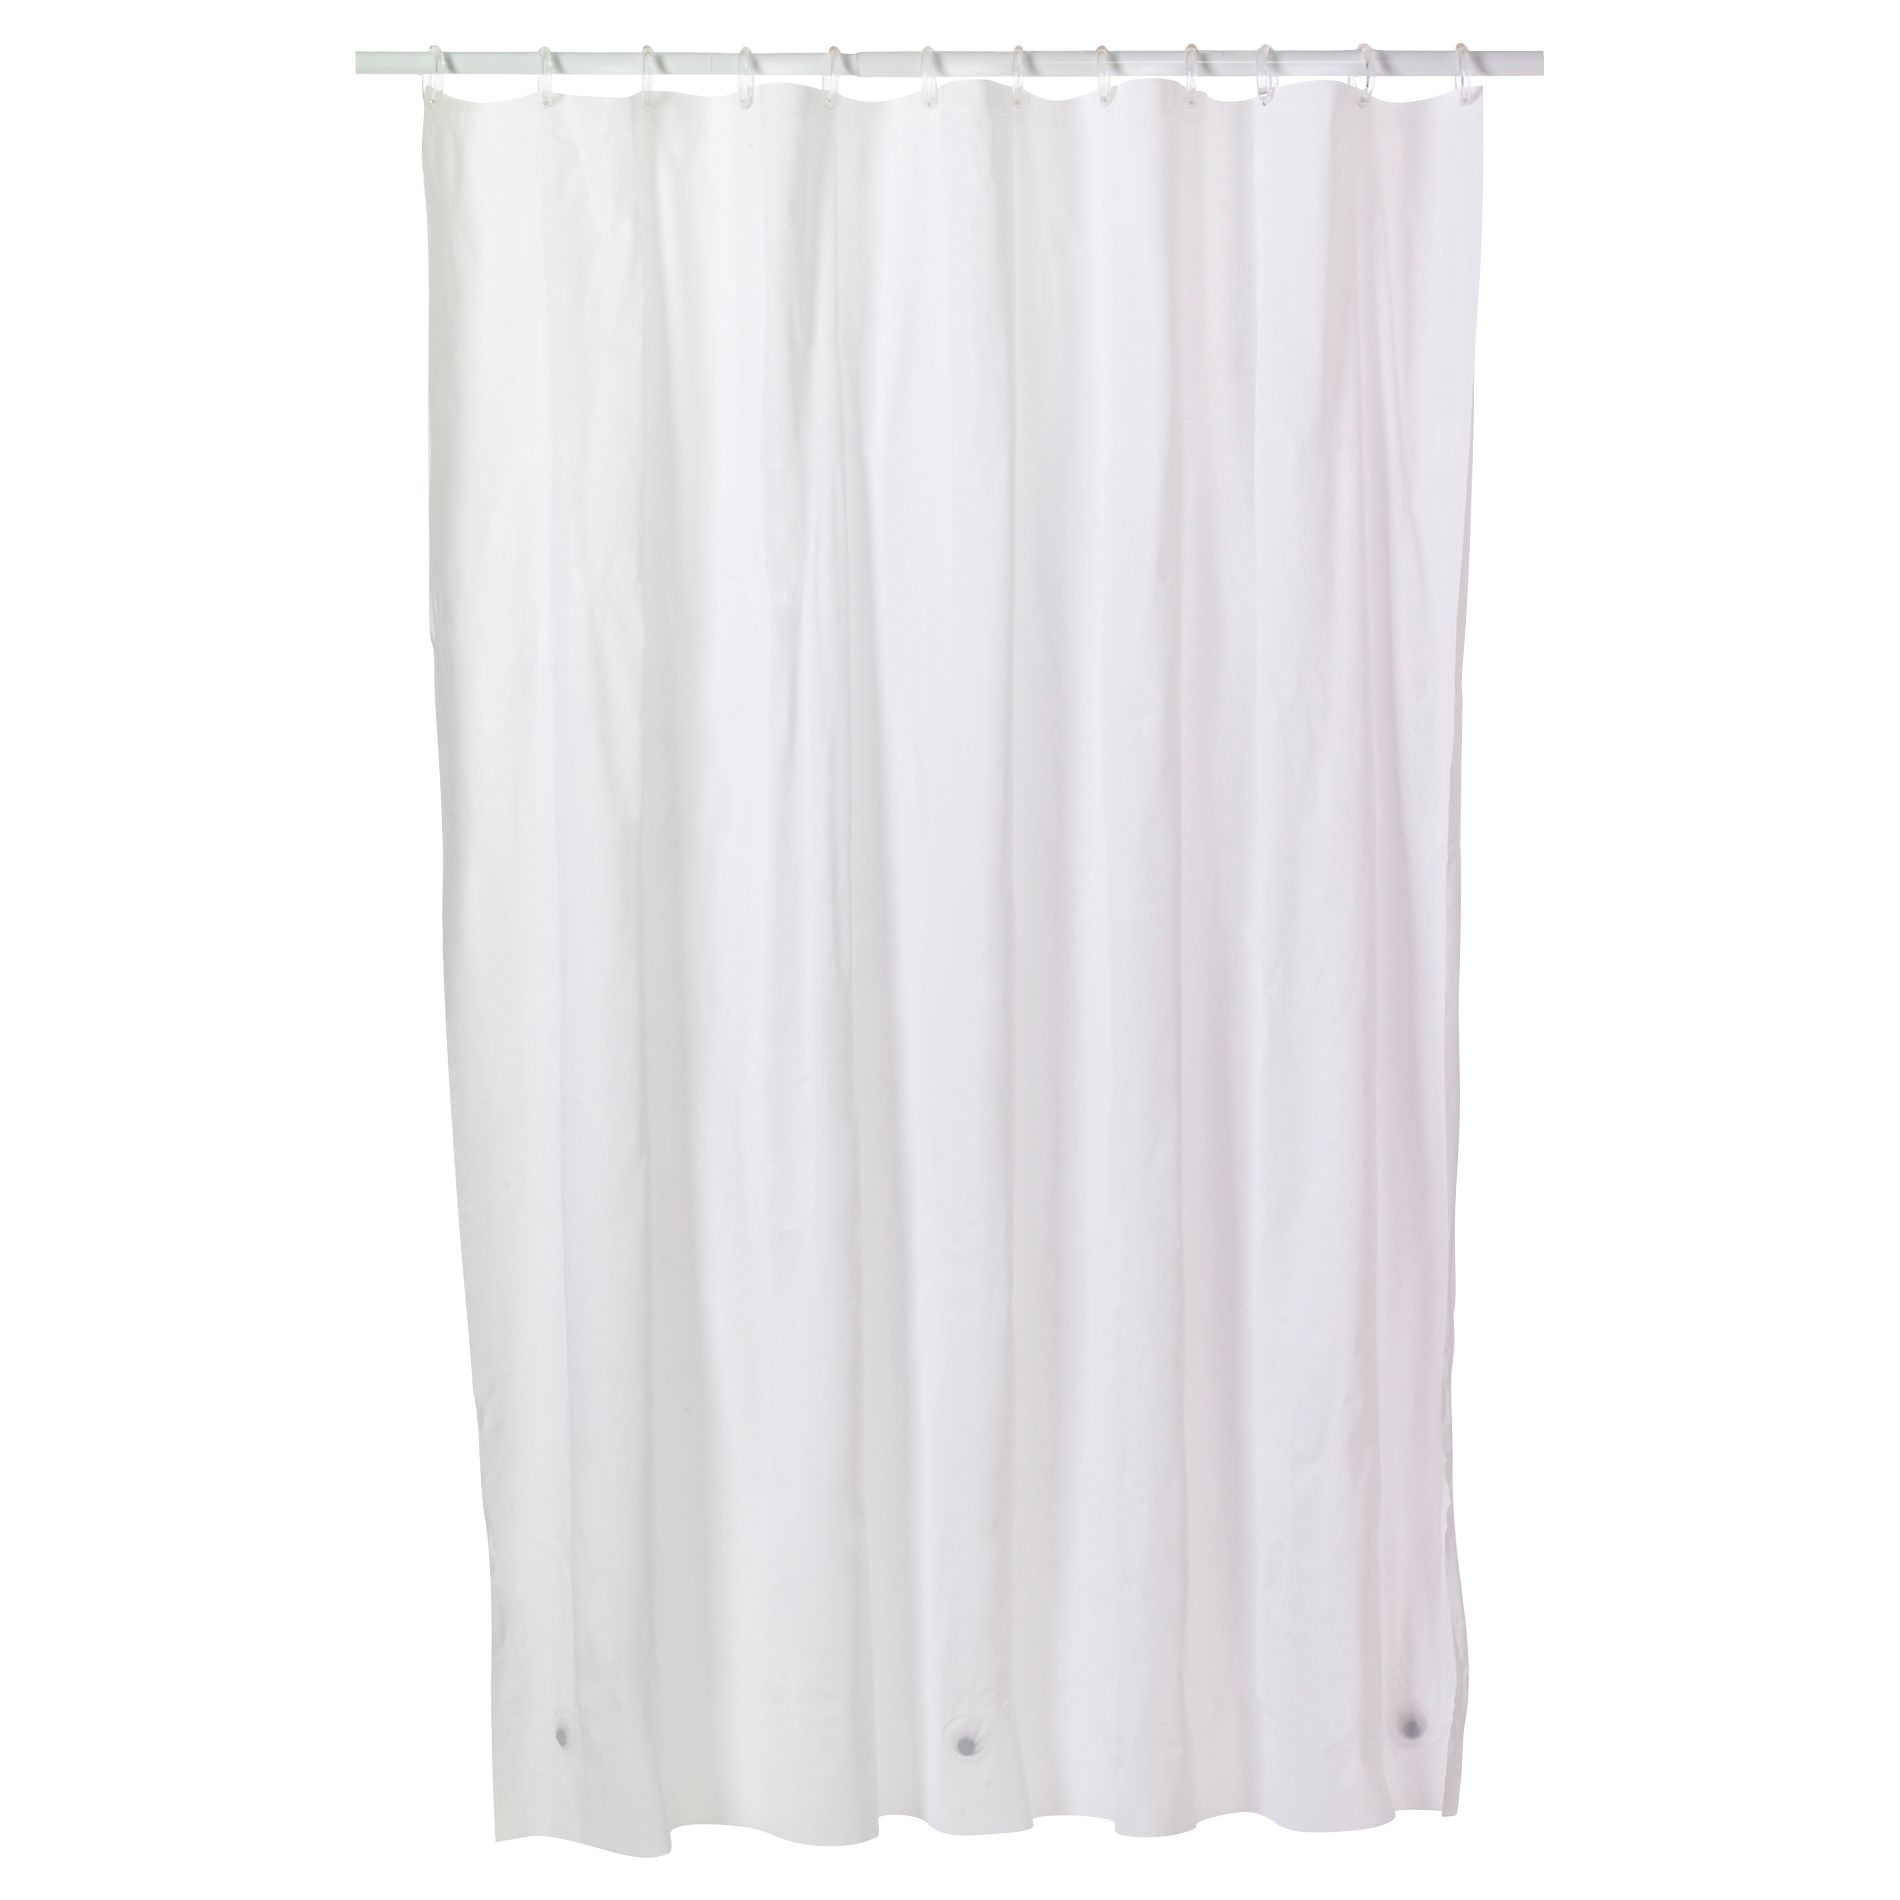 Shower Curtain Liner with Pockets | Shower Curtain Liner | Hookless Shower Curtain with Snap Liner